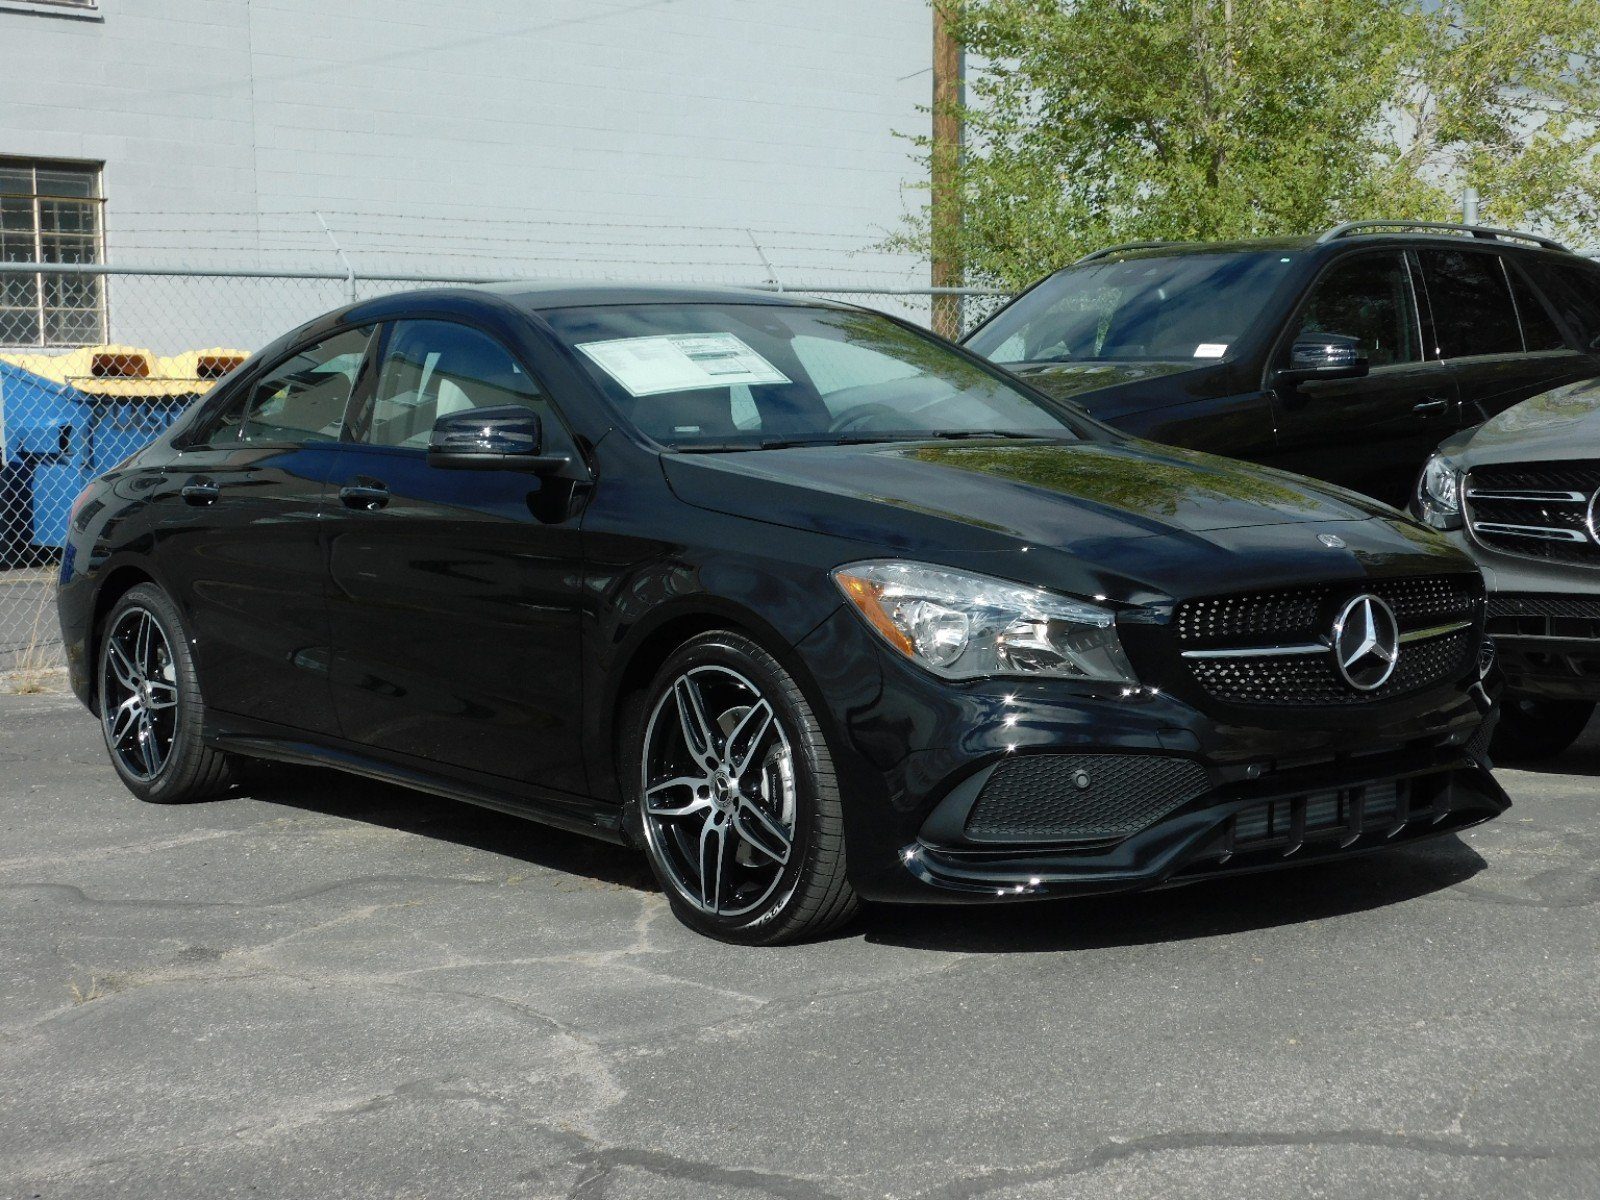 New 2019 Mercedes Benz CLA CLA 250 Coupe in Salt Lake City 1M9076